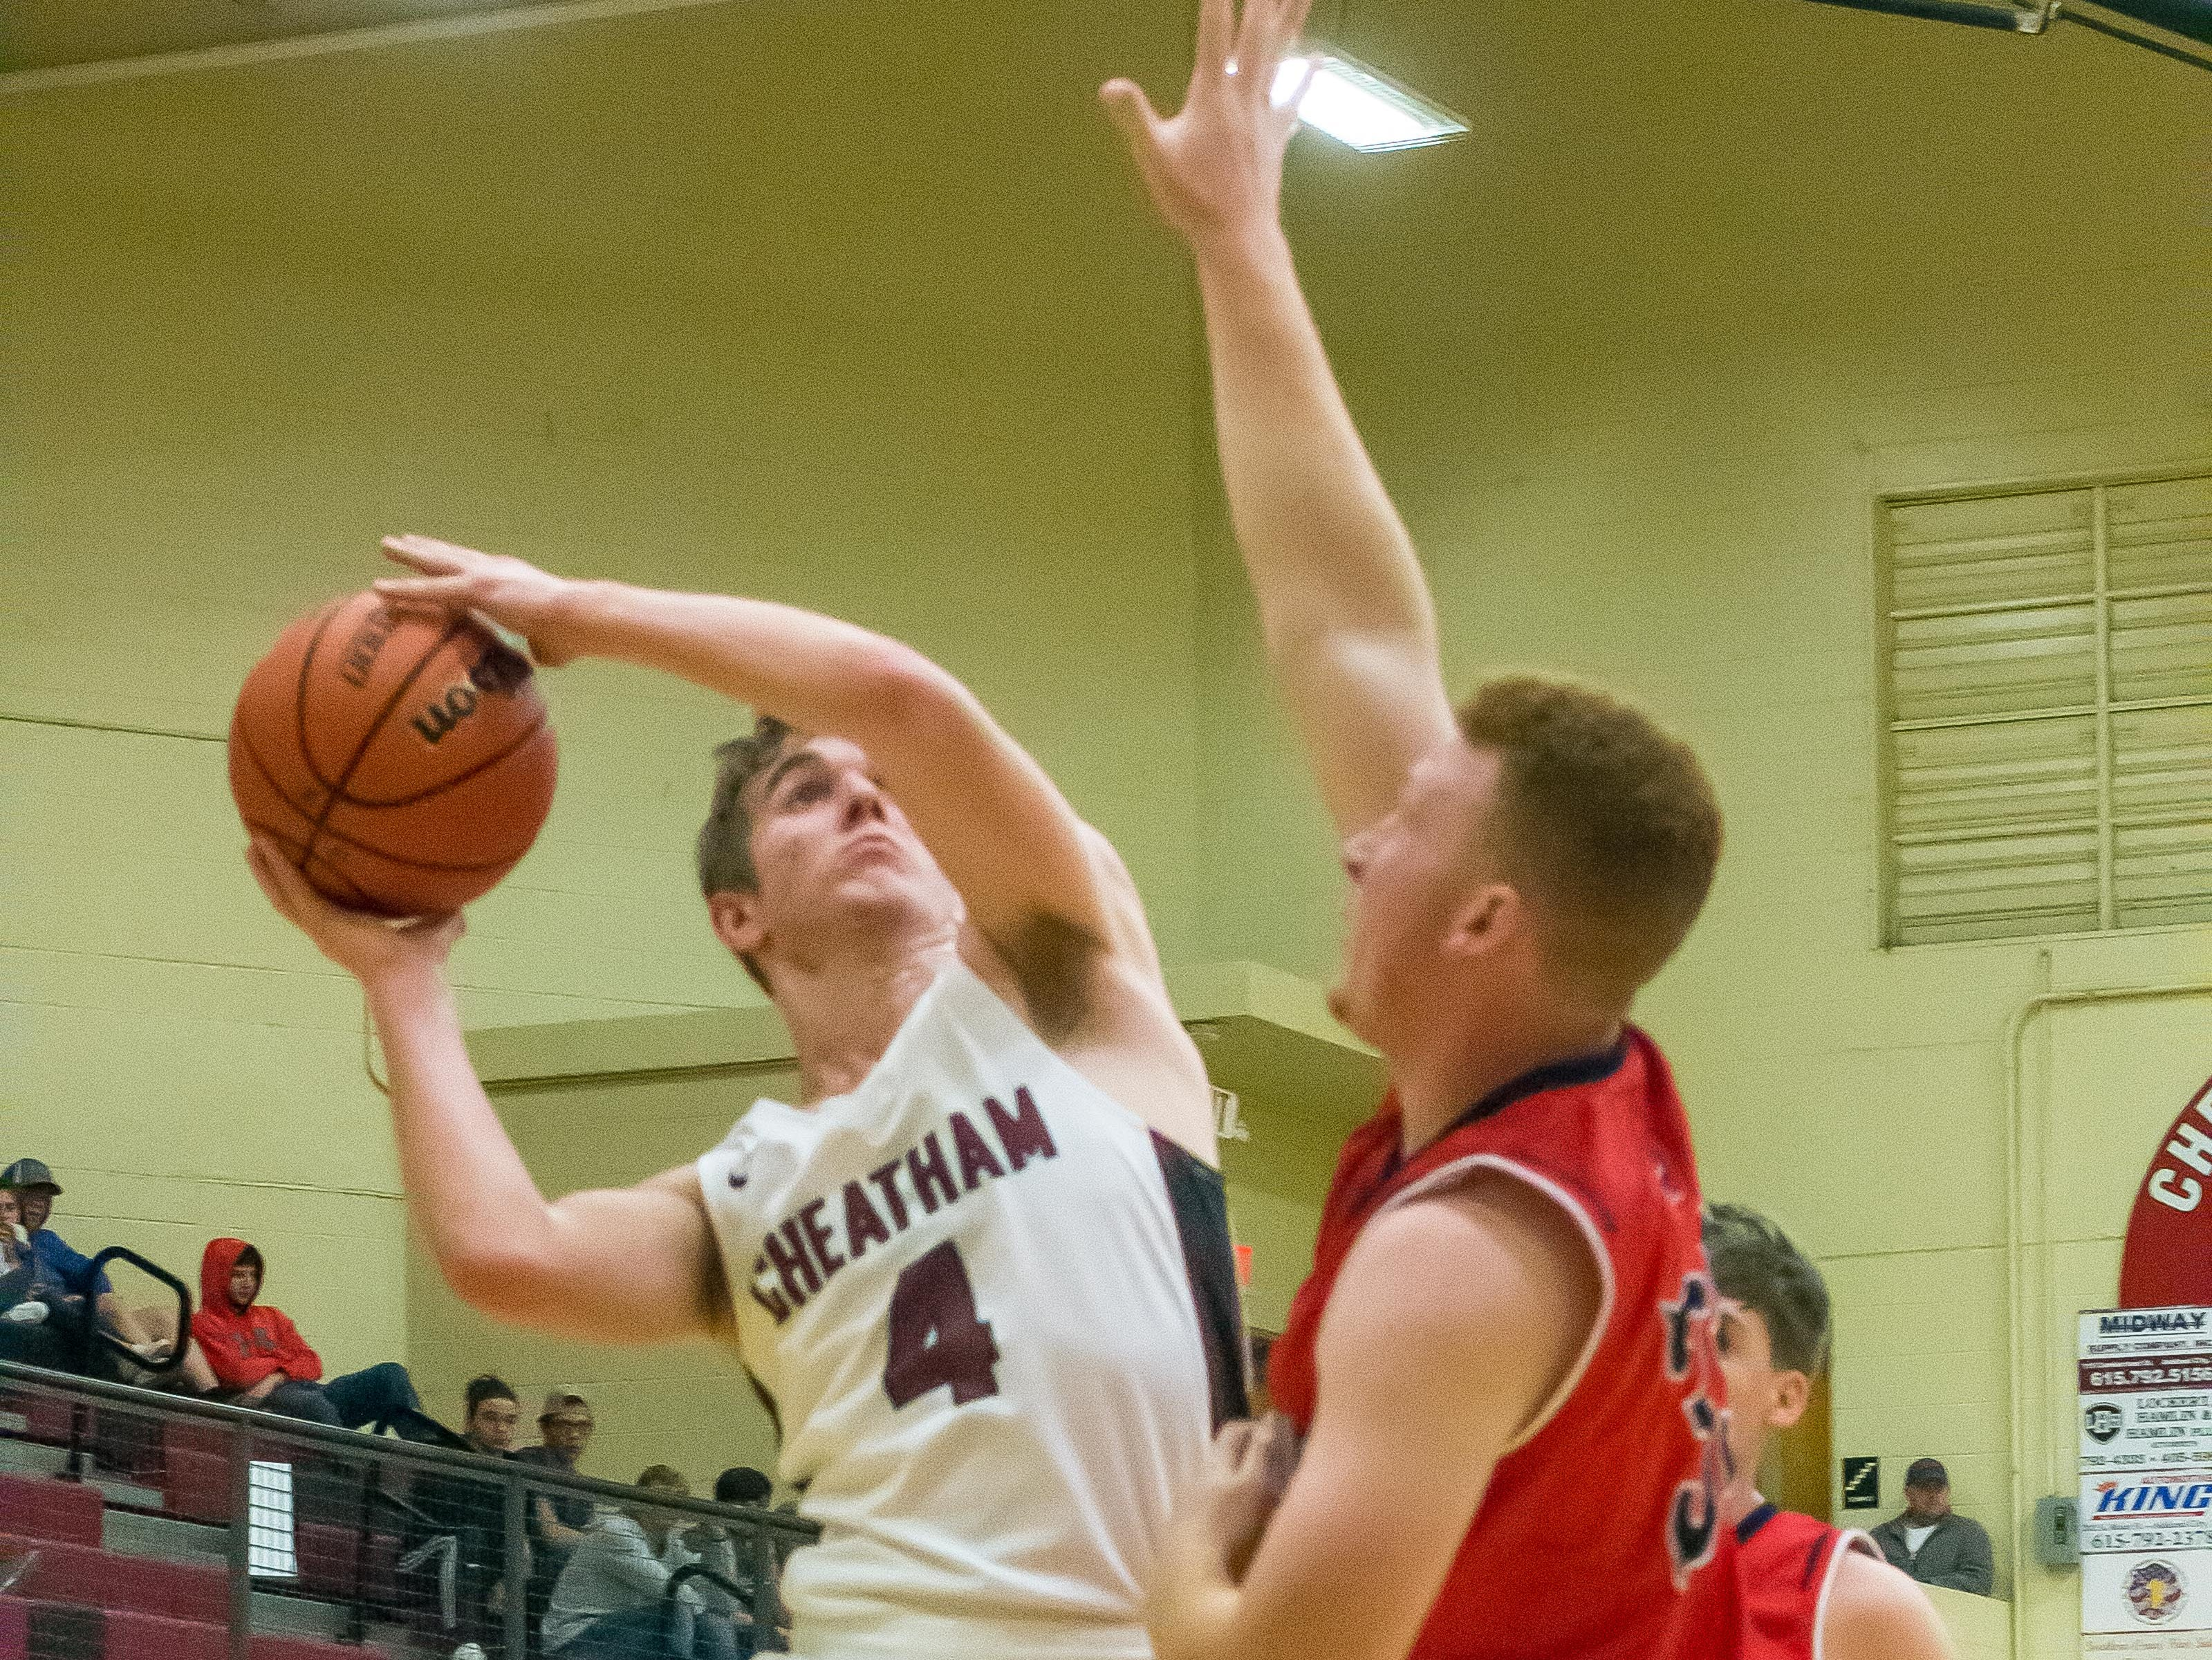 Cheatham County's Charlie Martin manuevers a shot over a Creek Wood defender.